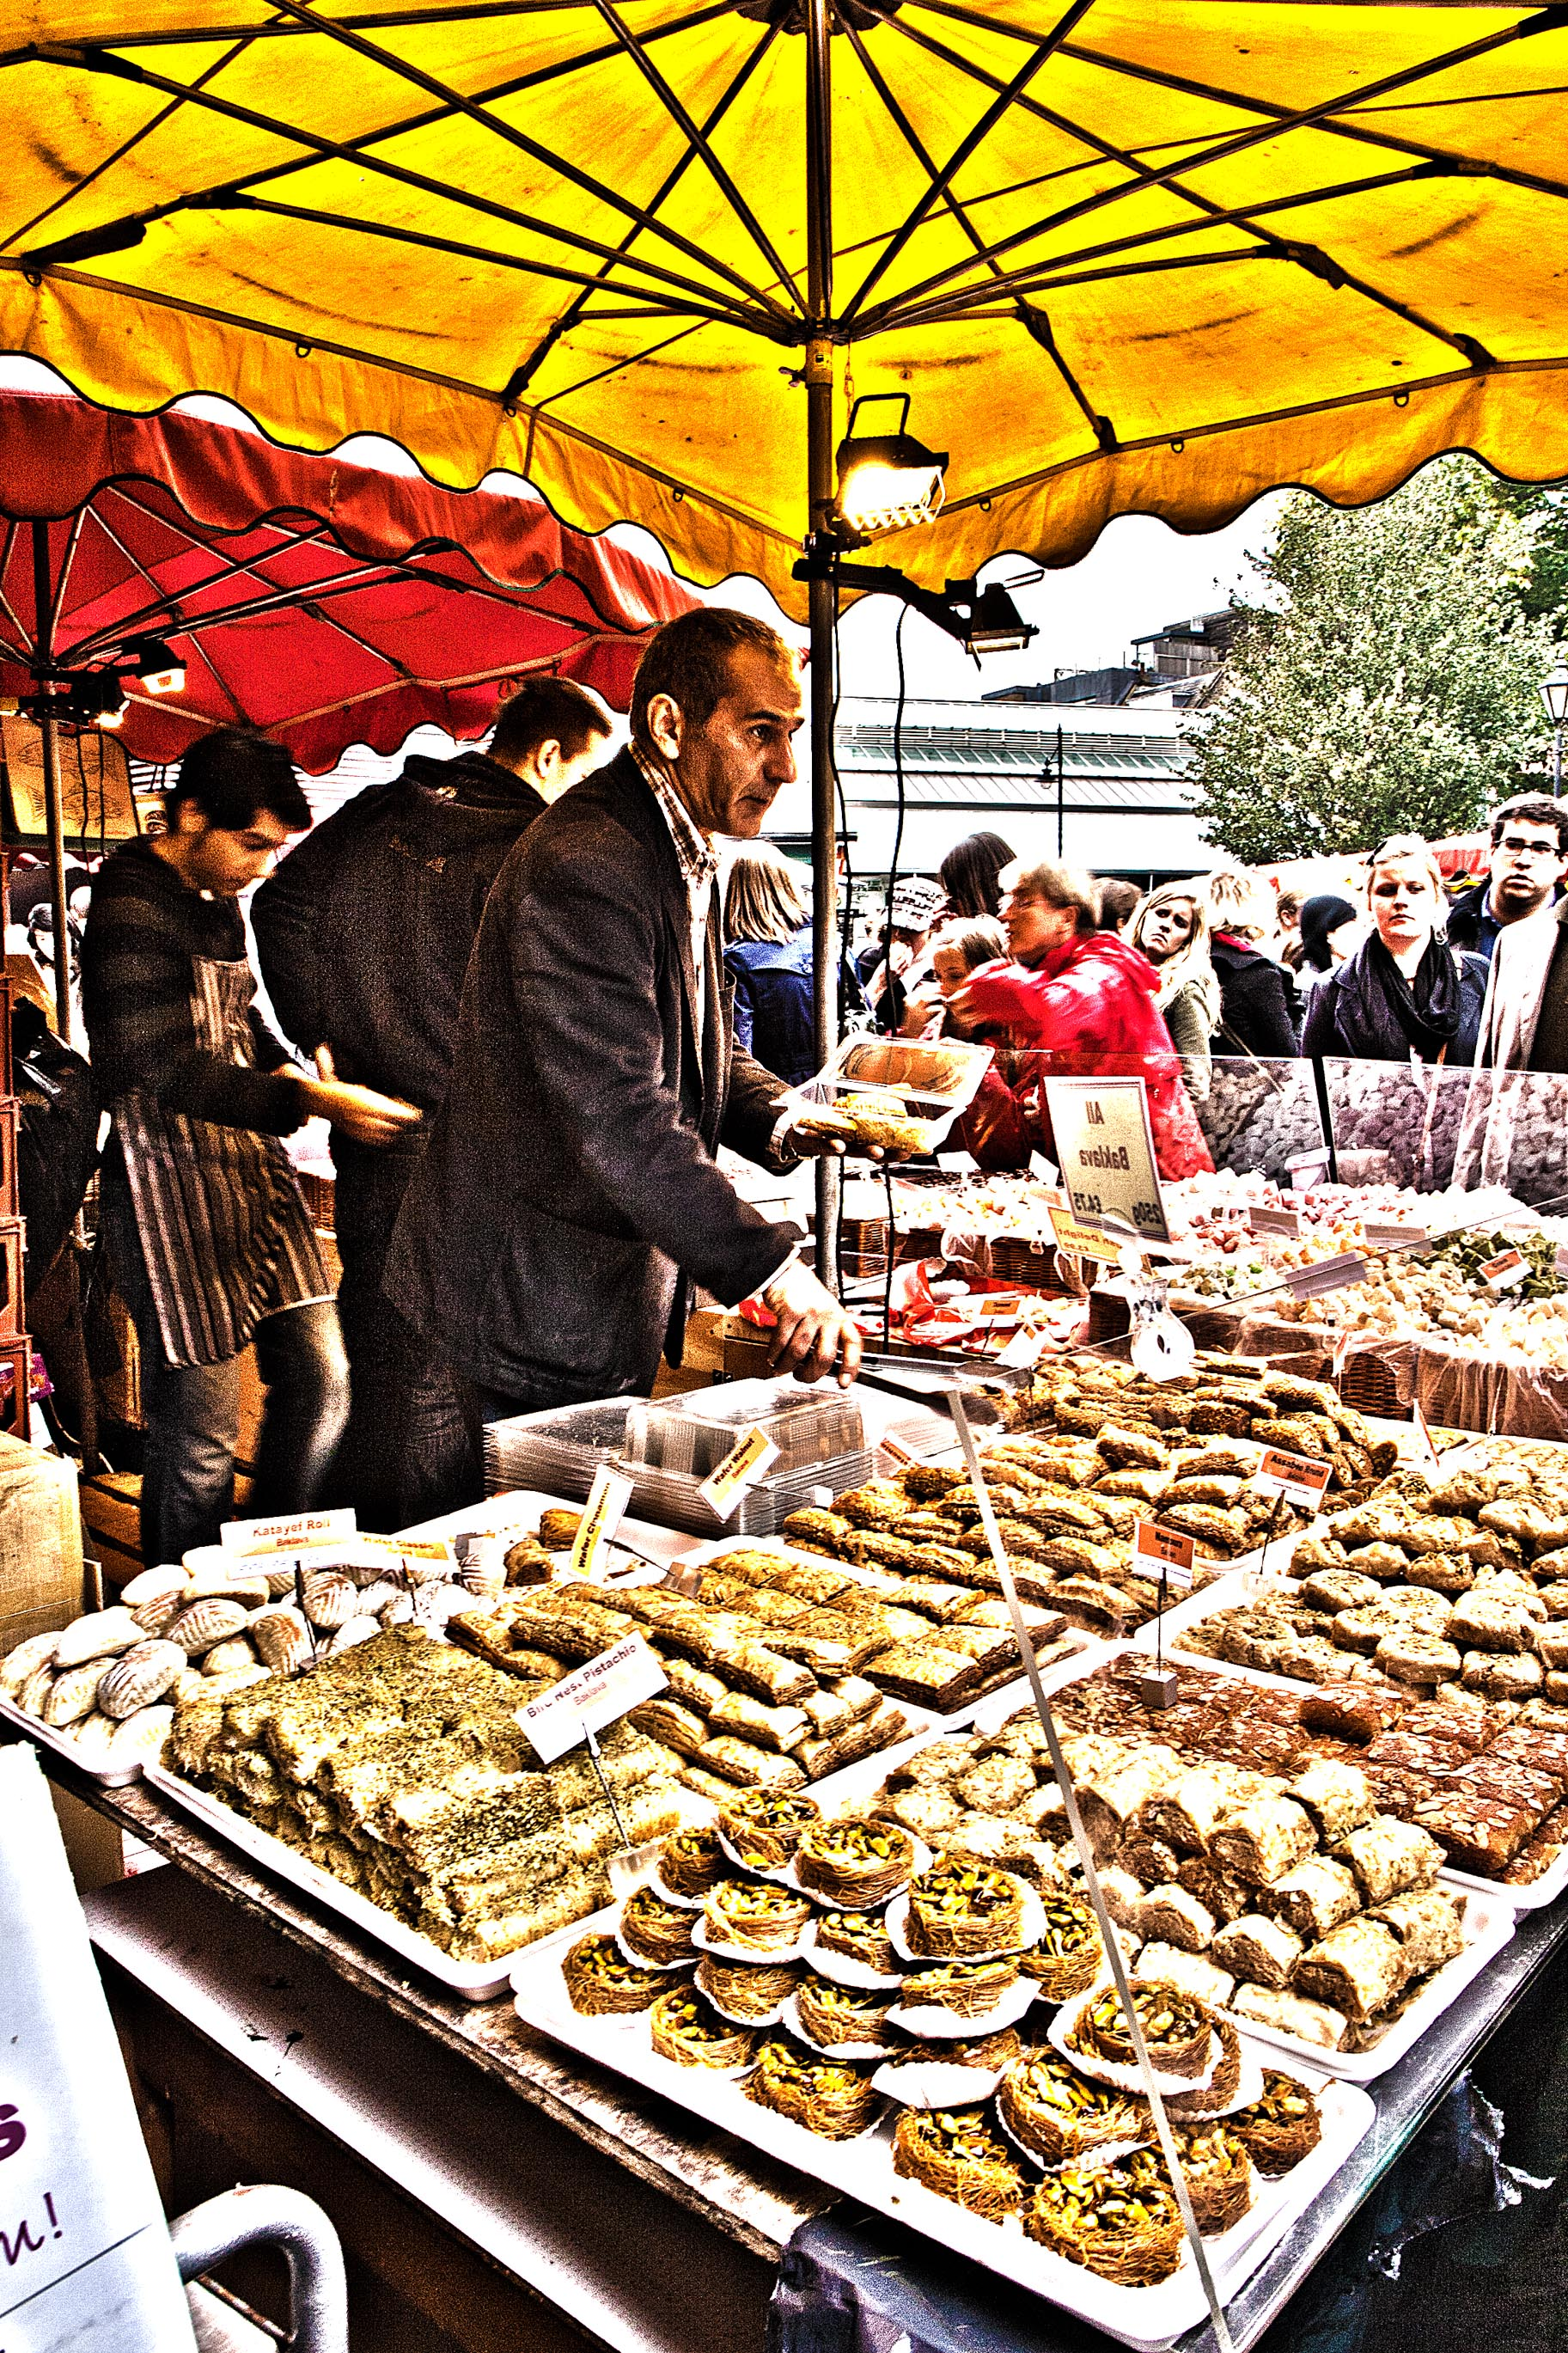 Sweets and Candies at the Borough Market – HDR